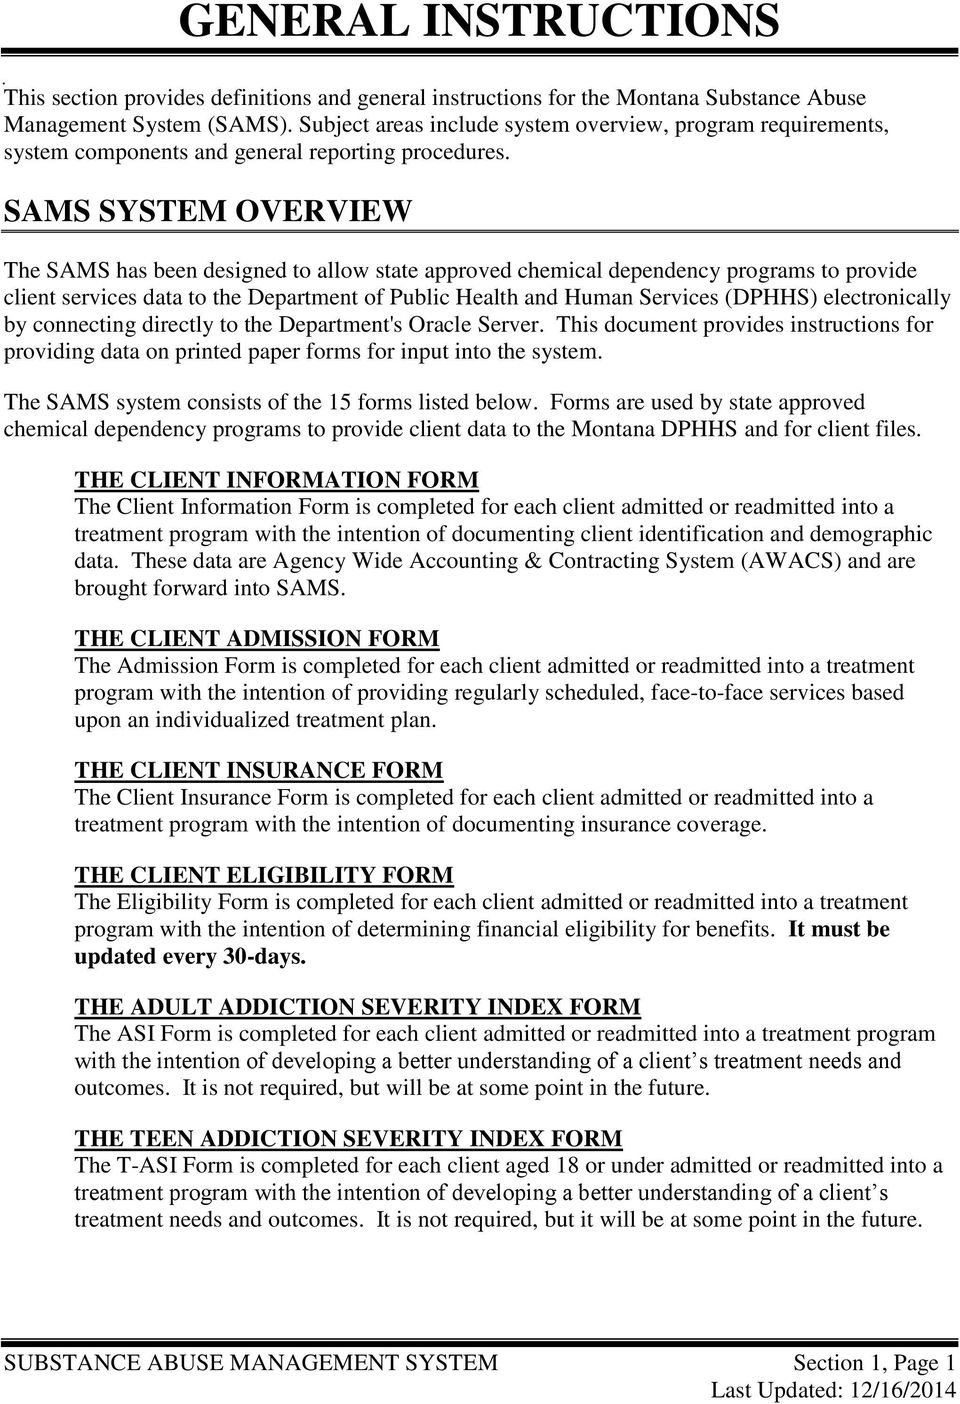 SAMS SYSTEM OVERVIEW The SAMS has been designed to allow state approved chemical dependency programs to provide client services data to the Department of Public Health and Human Services (DPHHS)